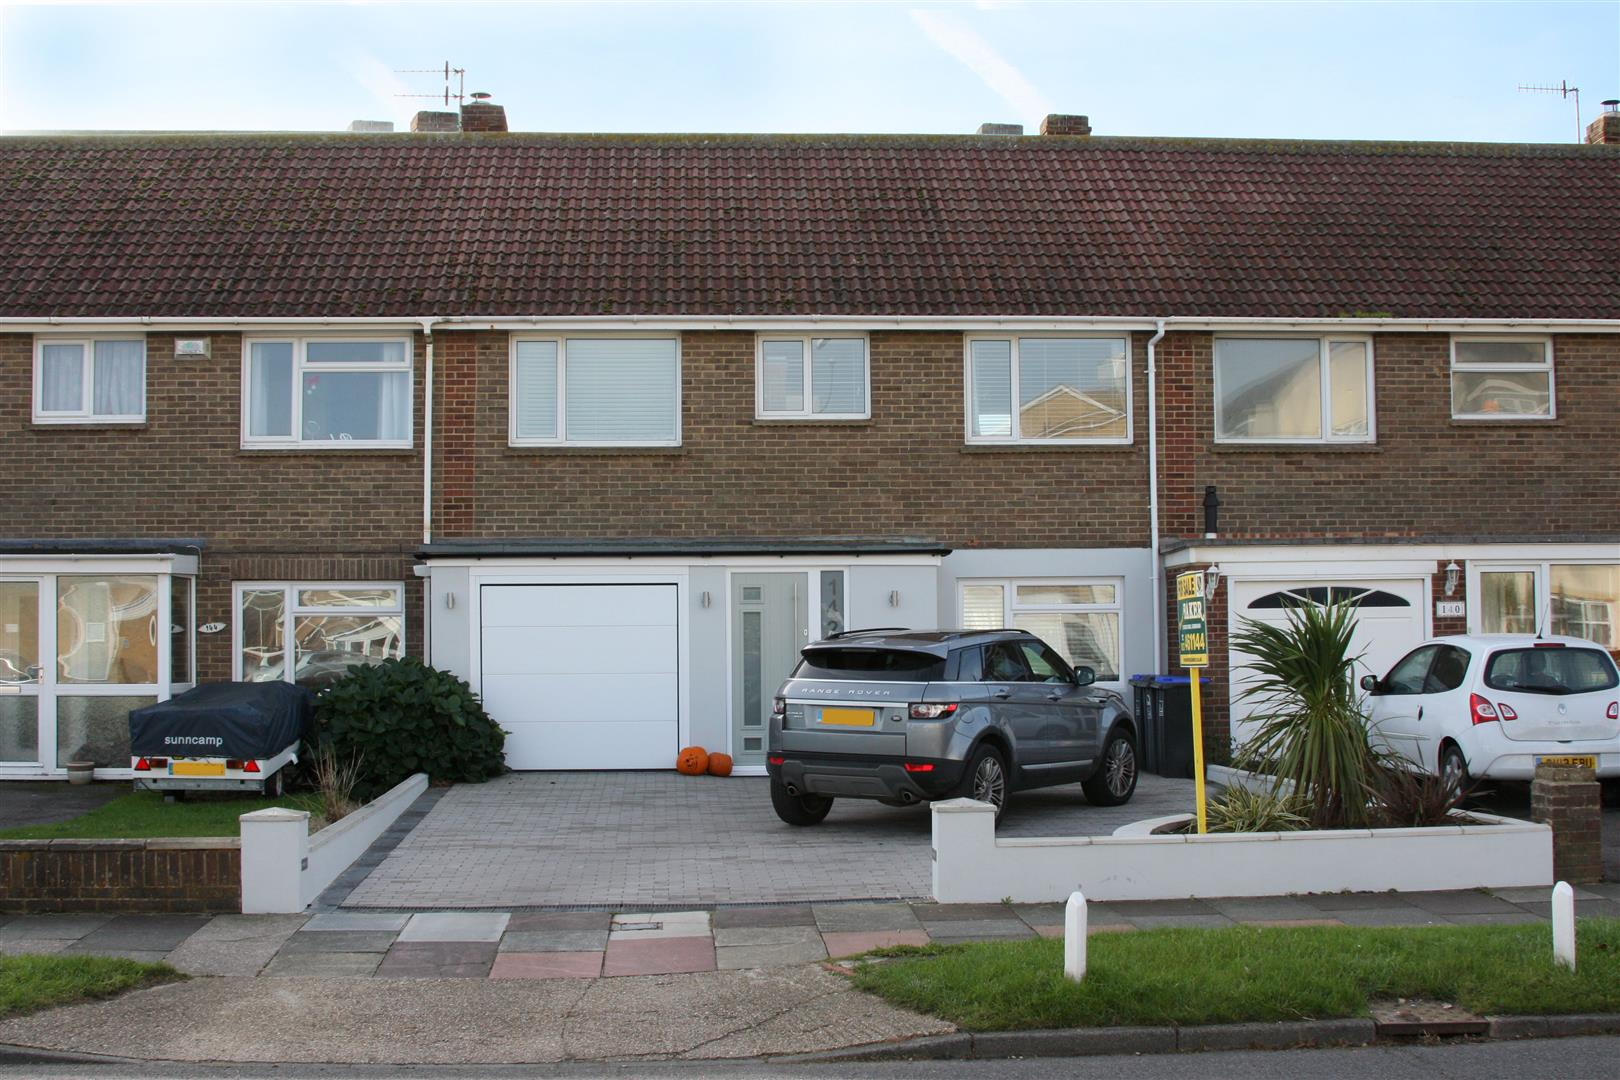 3 Bedrooms Terraced House for sale in Shoreham Beach